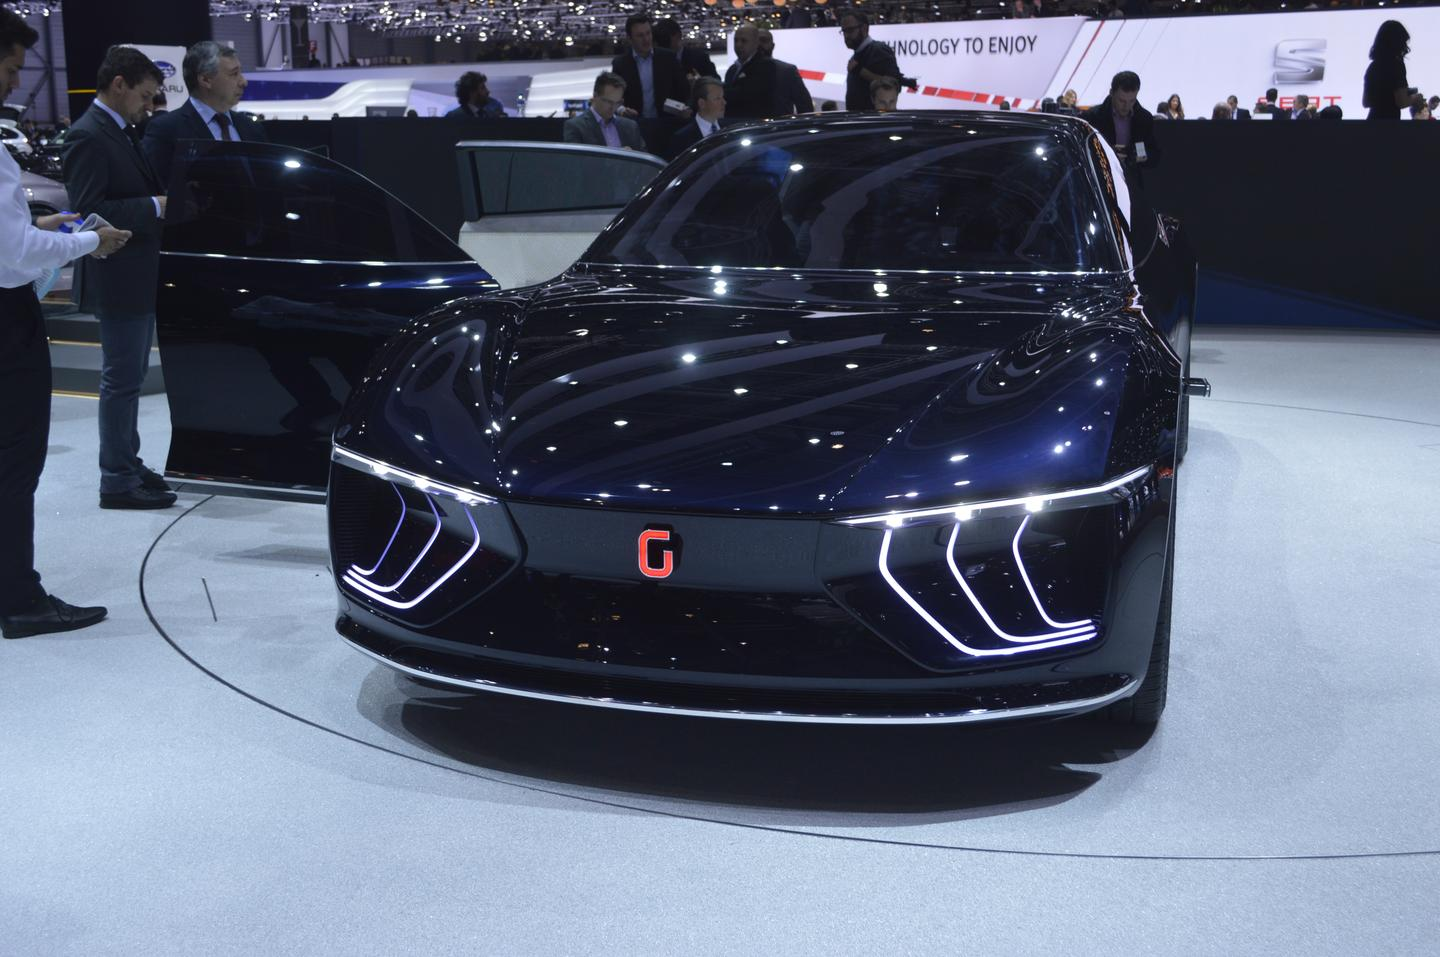 The Italdesign Giugiaro GEA is a new concept exploring the luxury autonomous car of the future (Photo: C.C. Weiss/Gizmag.com)